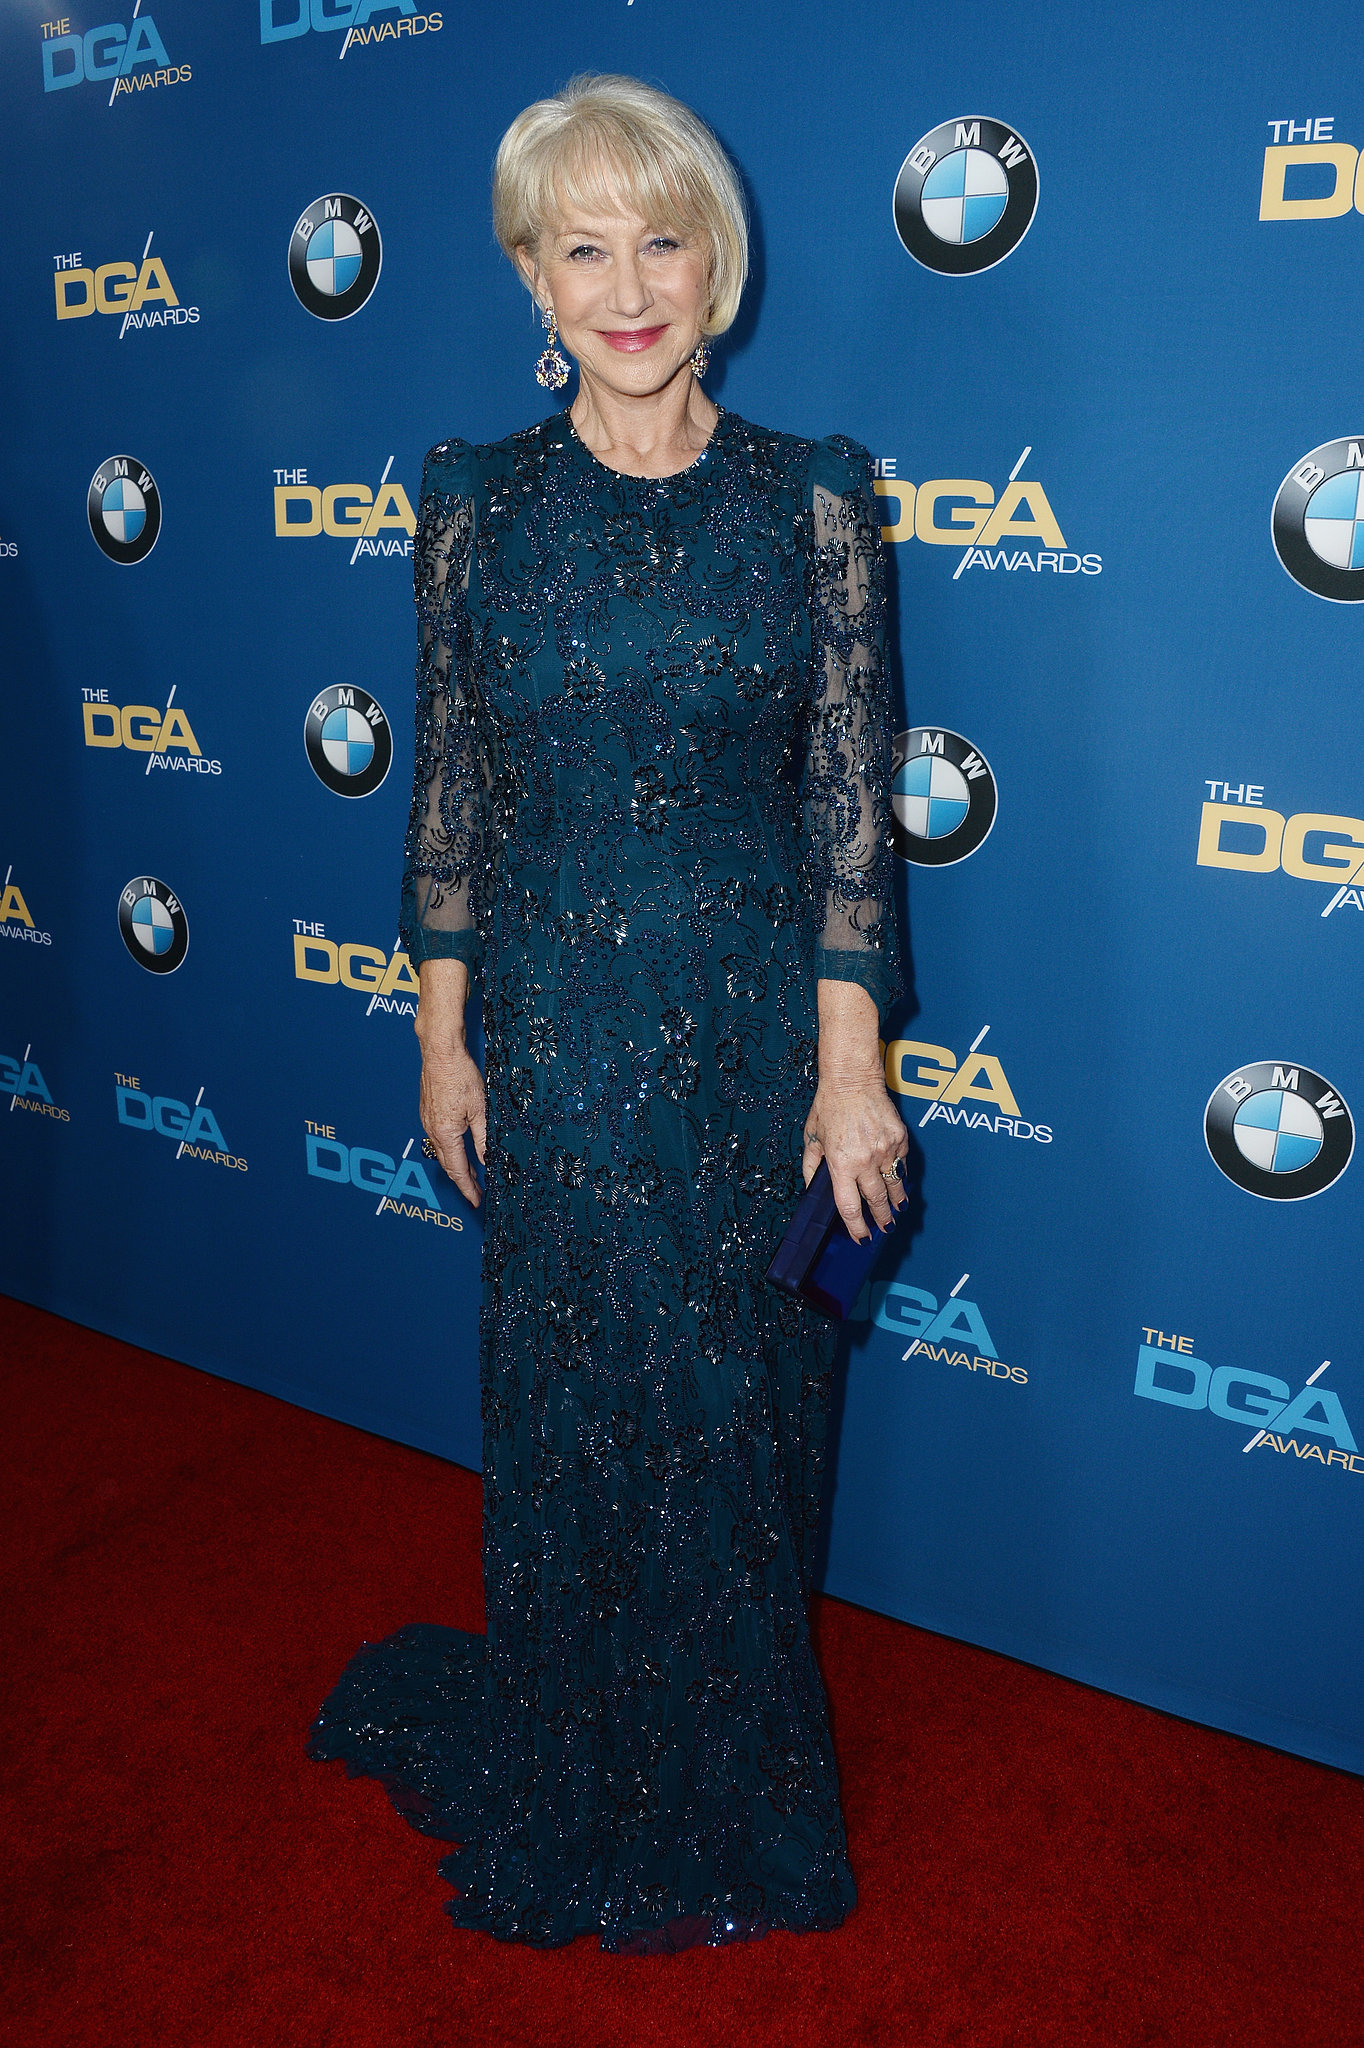 Helen Mirren hit the red carpet for the Directors Guild Awards in LA.